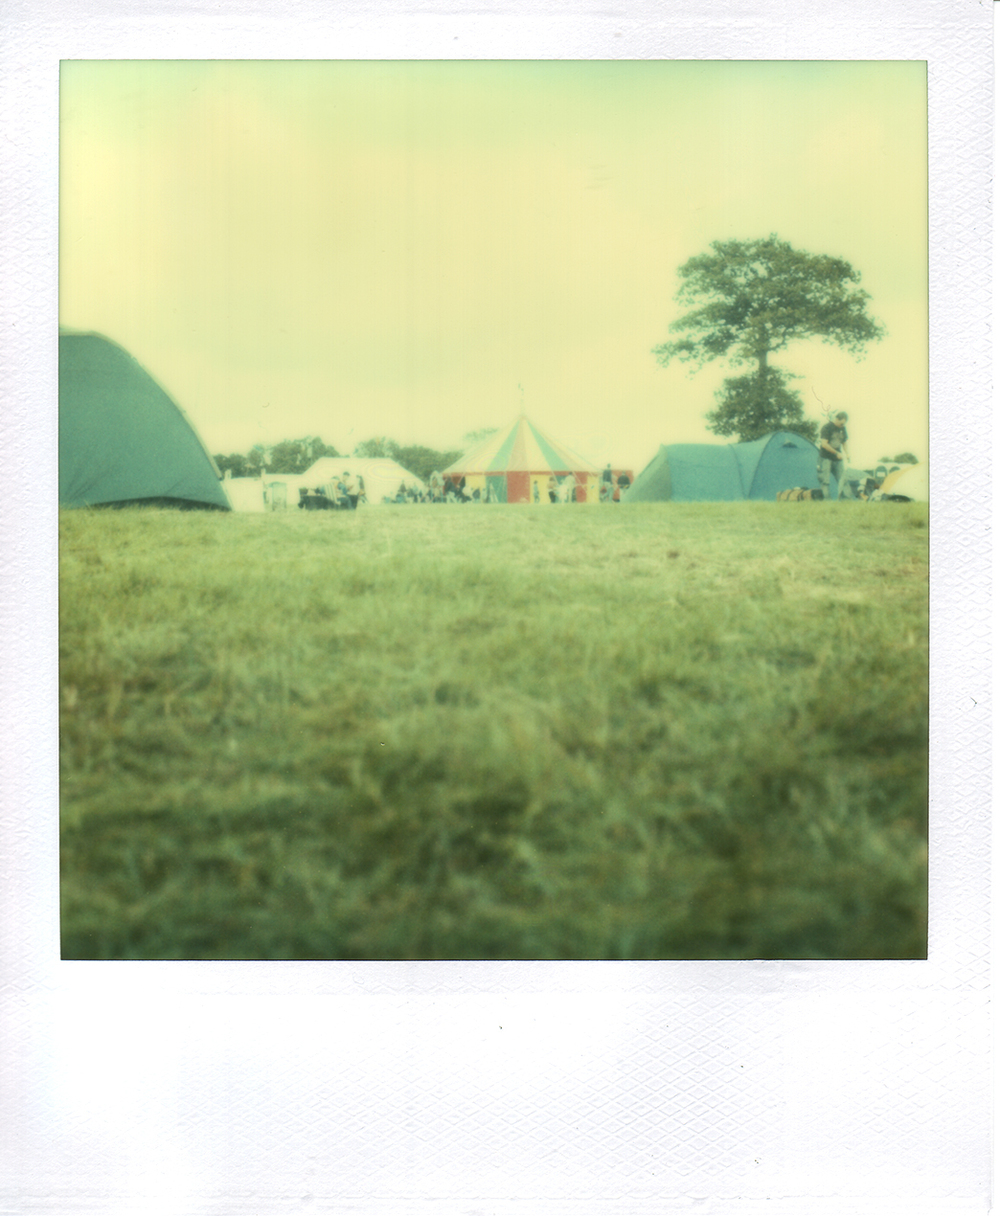 sx-70 film. can't get enough of the cyan cast.